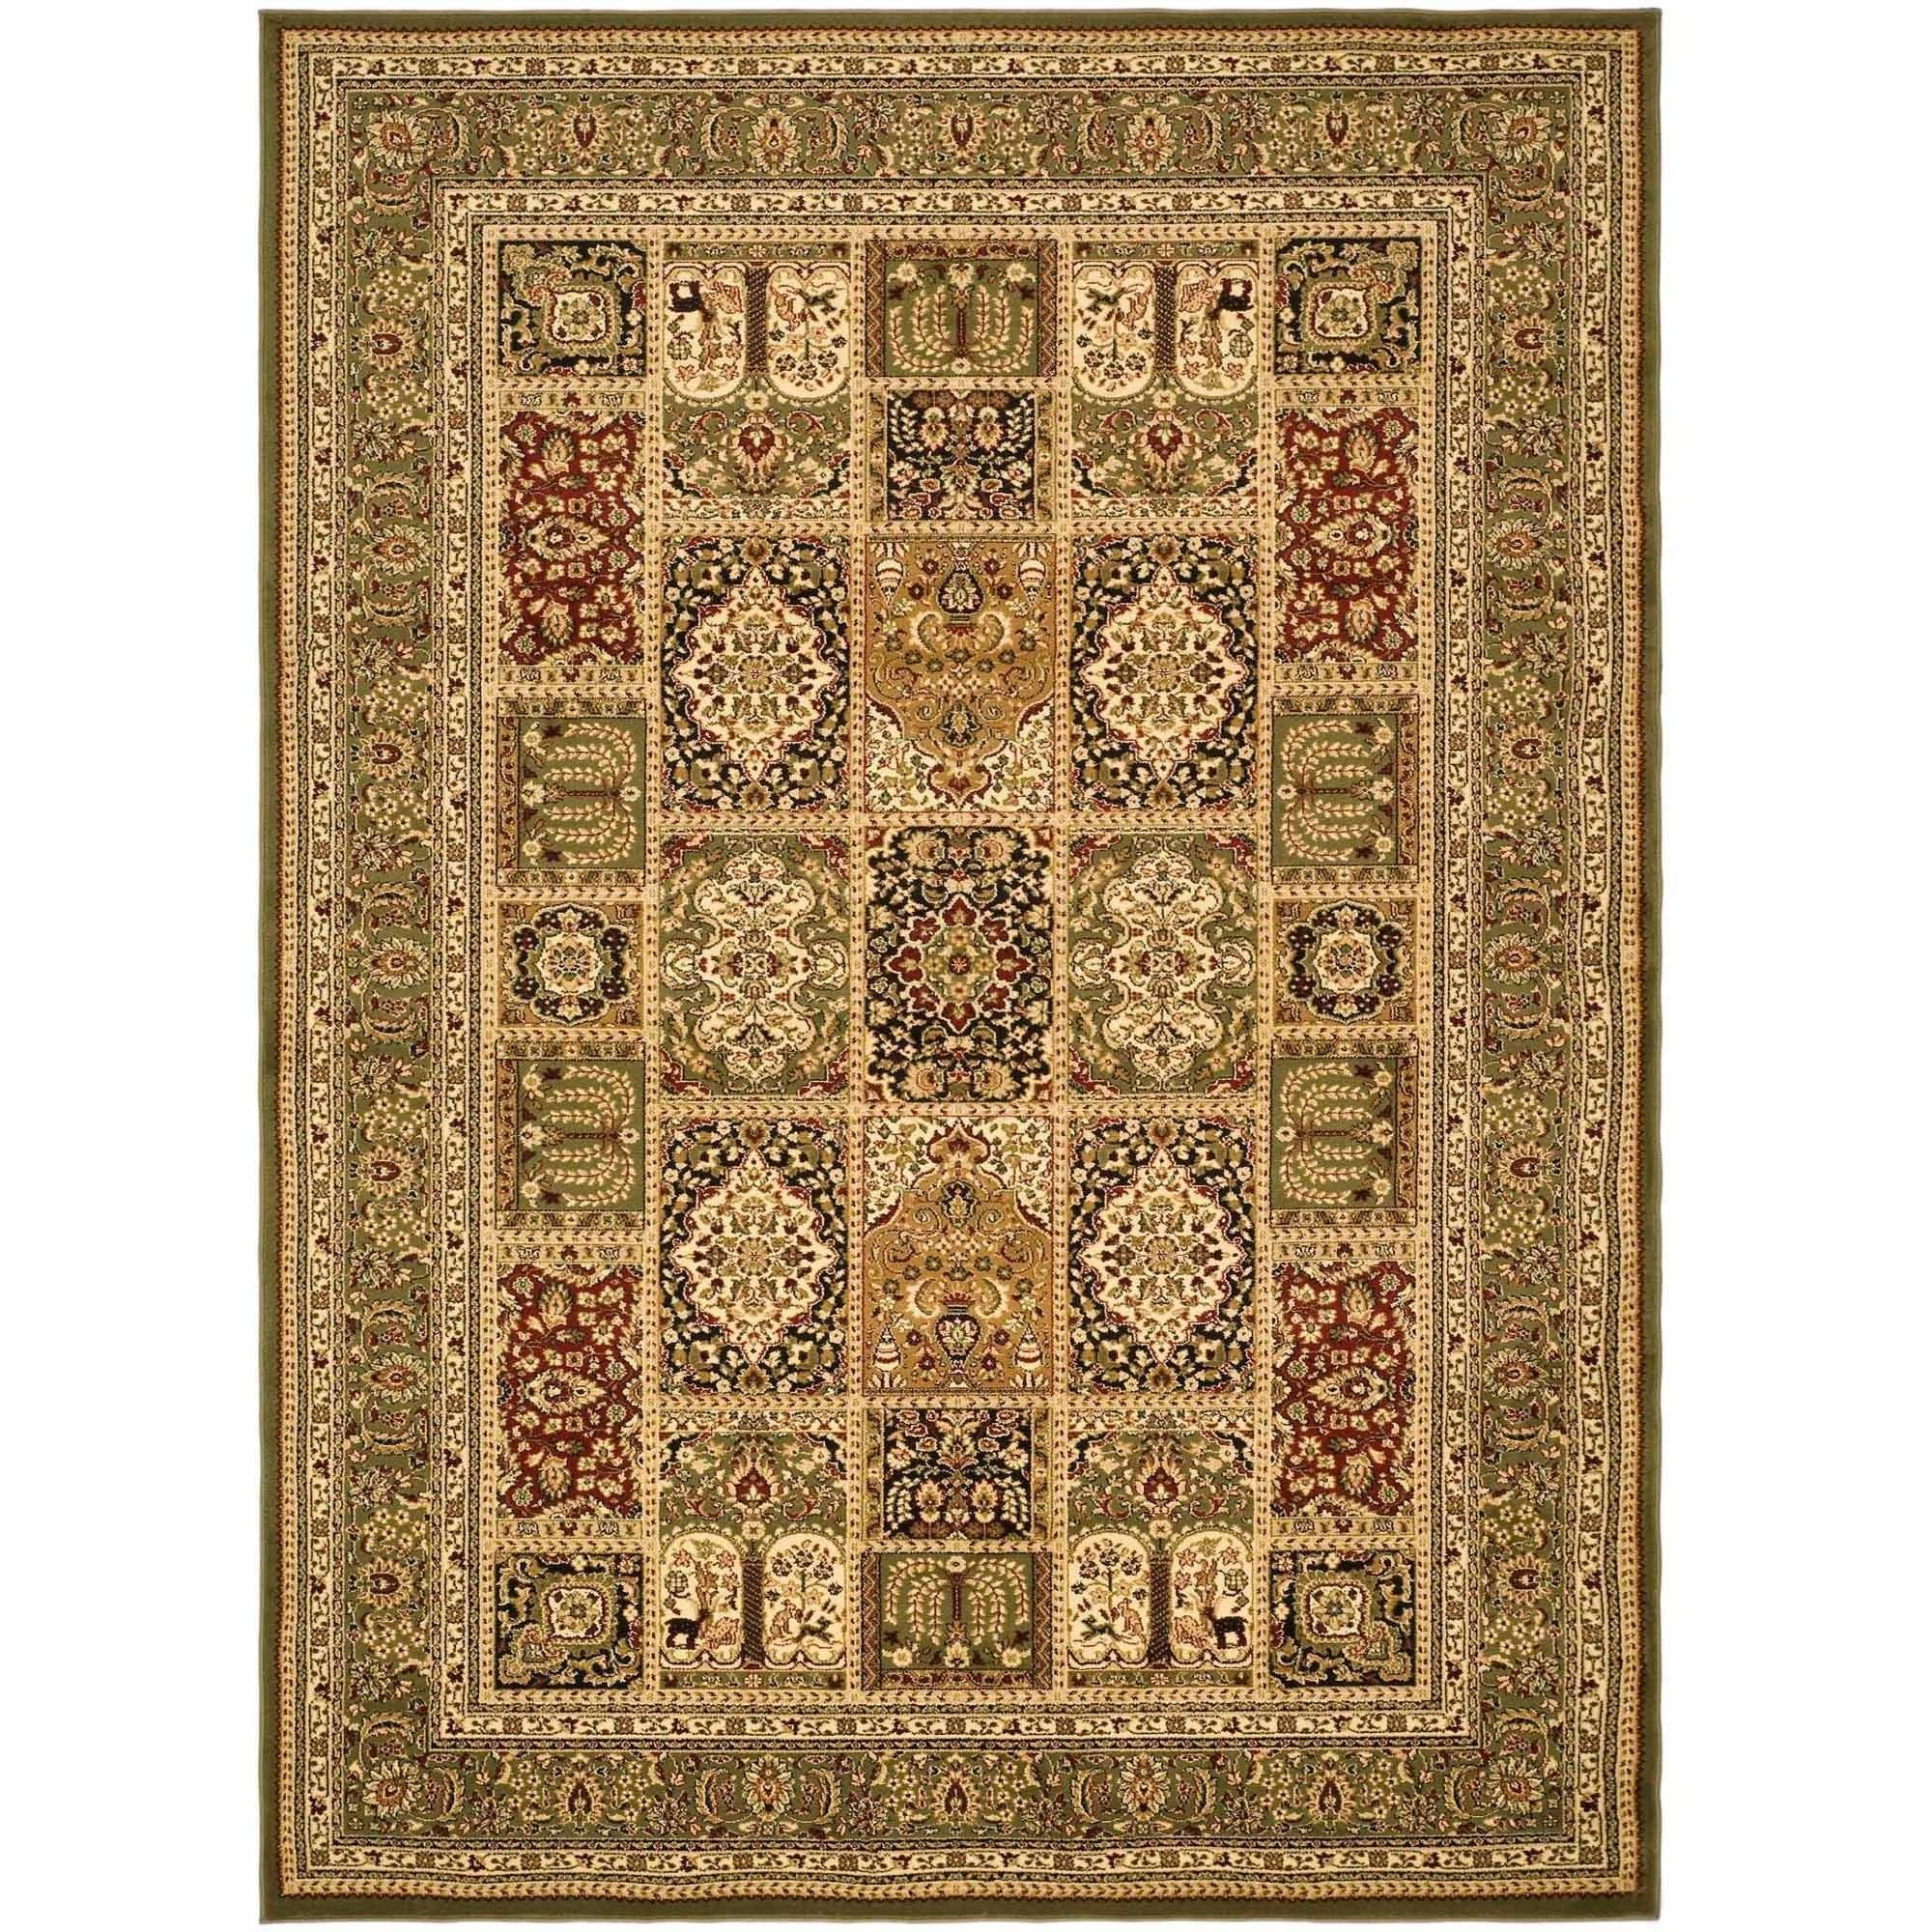 Safavieh Lyndhurst Panel Rectangular Area Rug, Green